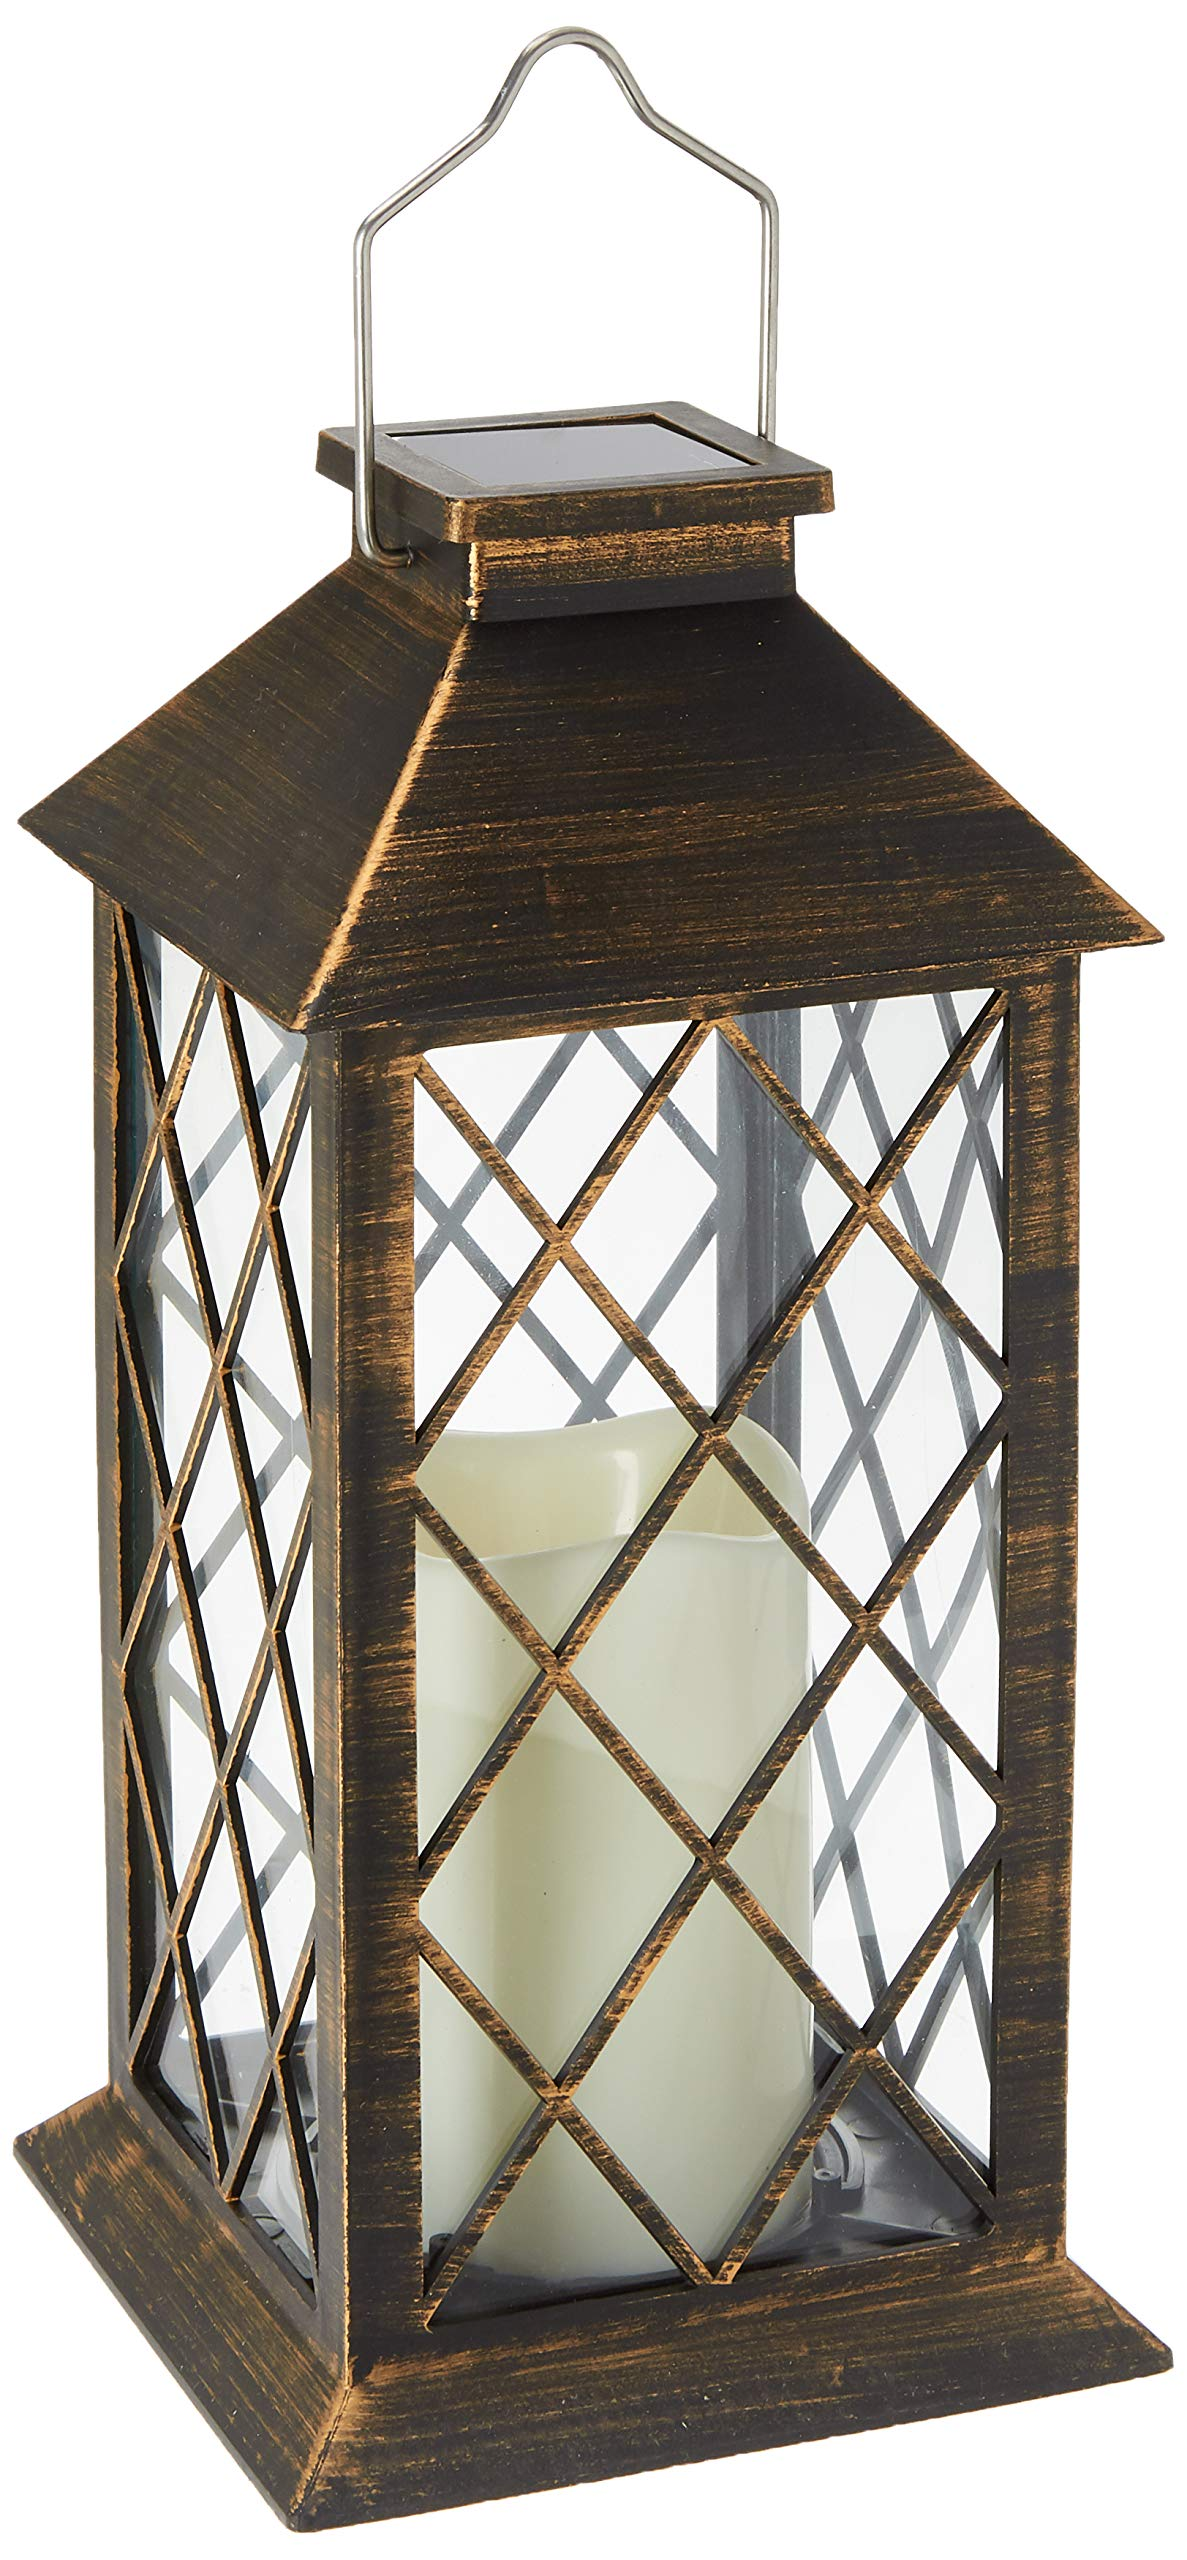 Darice 5.5'' x 10.8'' LED Candle Lantern, Gold/Black